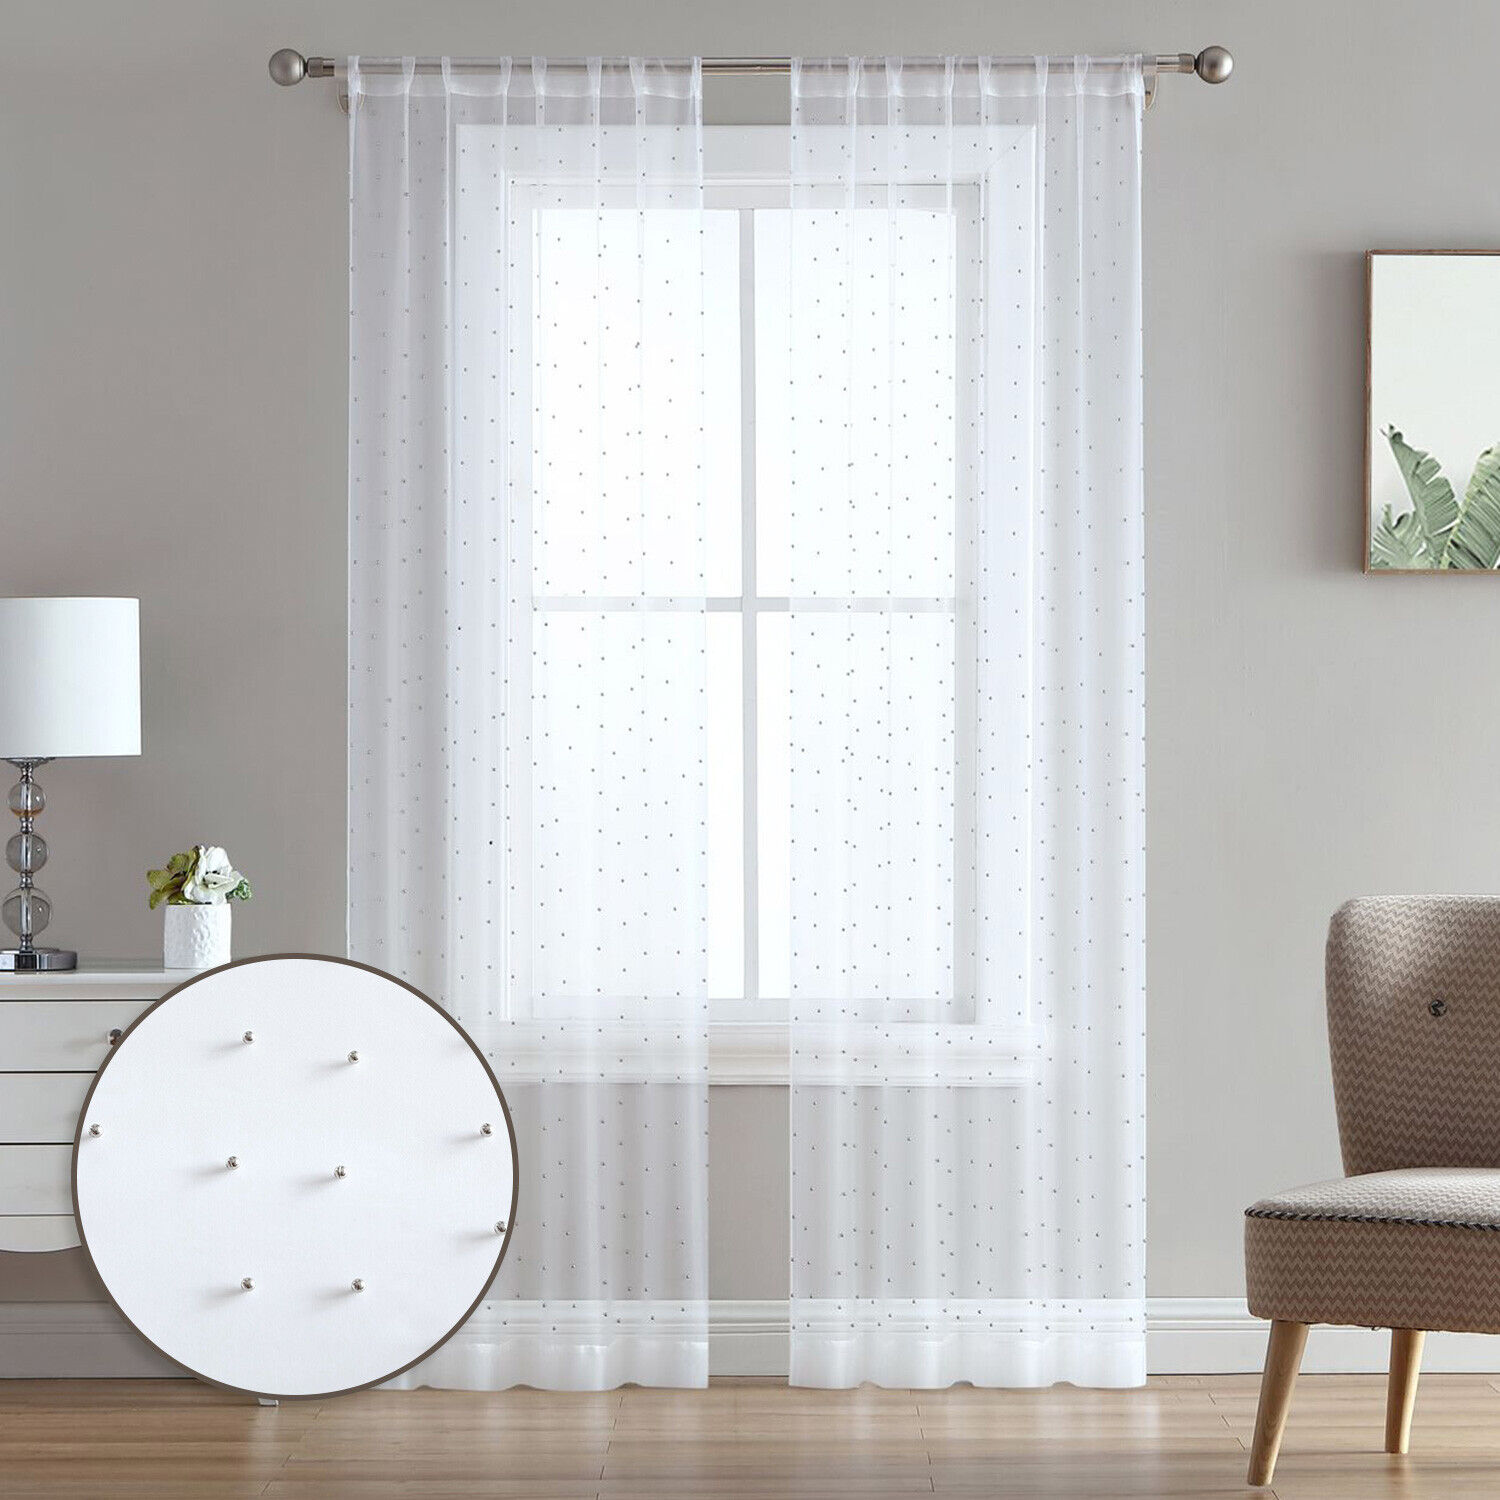 84″ or 96″ Sheer White 2-Panel Rod Pocket Window Curtains Drapes, Silver Beads Curtains & Drapes